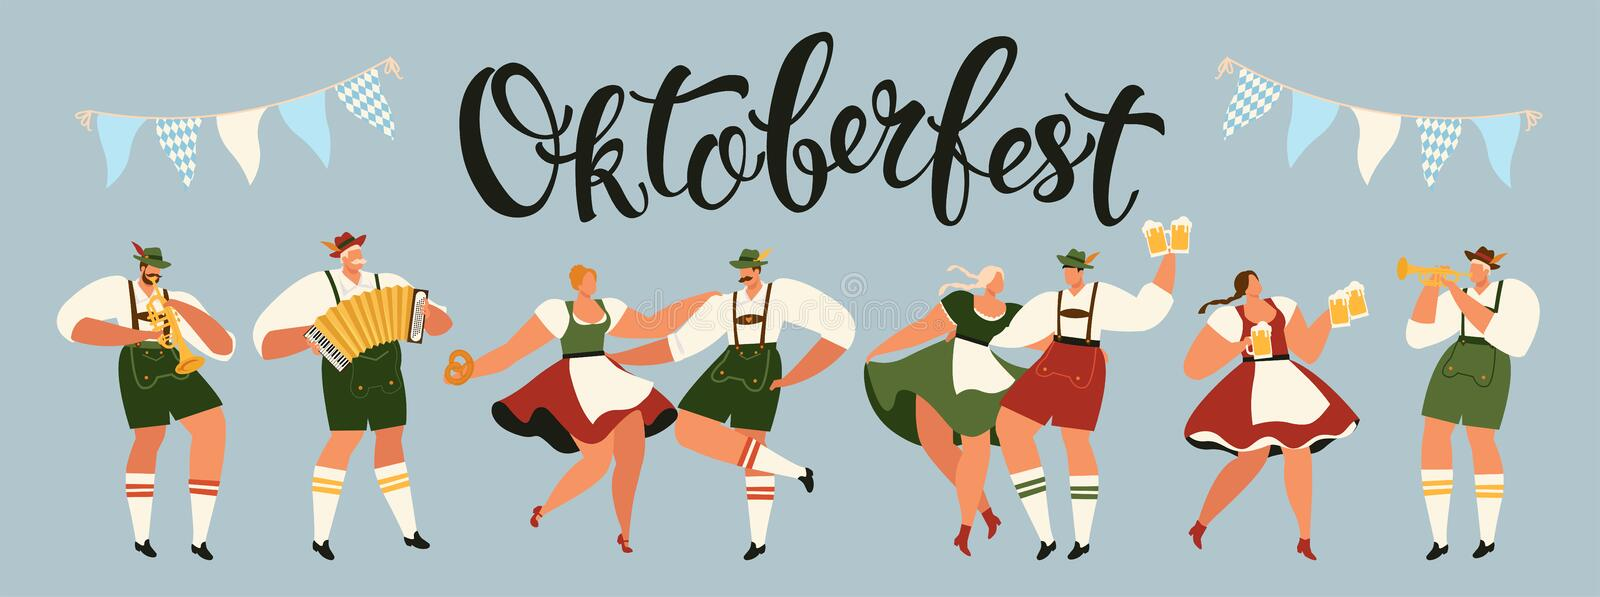 Group Of People Drink Beer Oktoberfest Party Celebration Man And Woman Wearing Traditional Clothes couples dance stock illustration